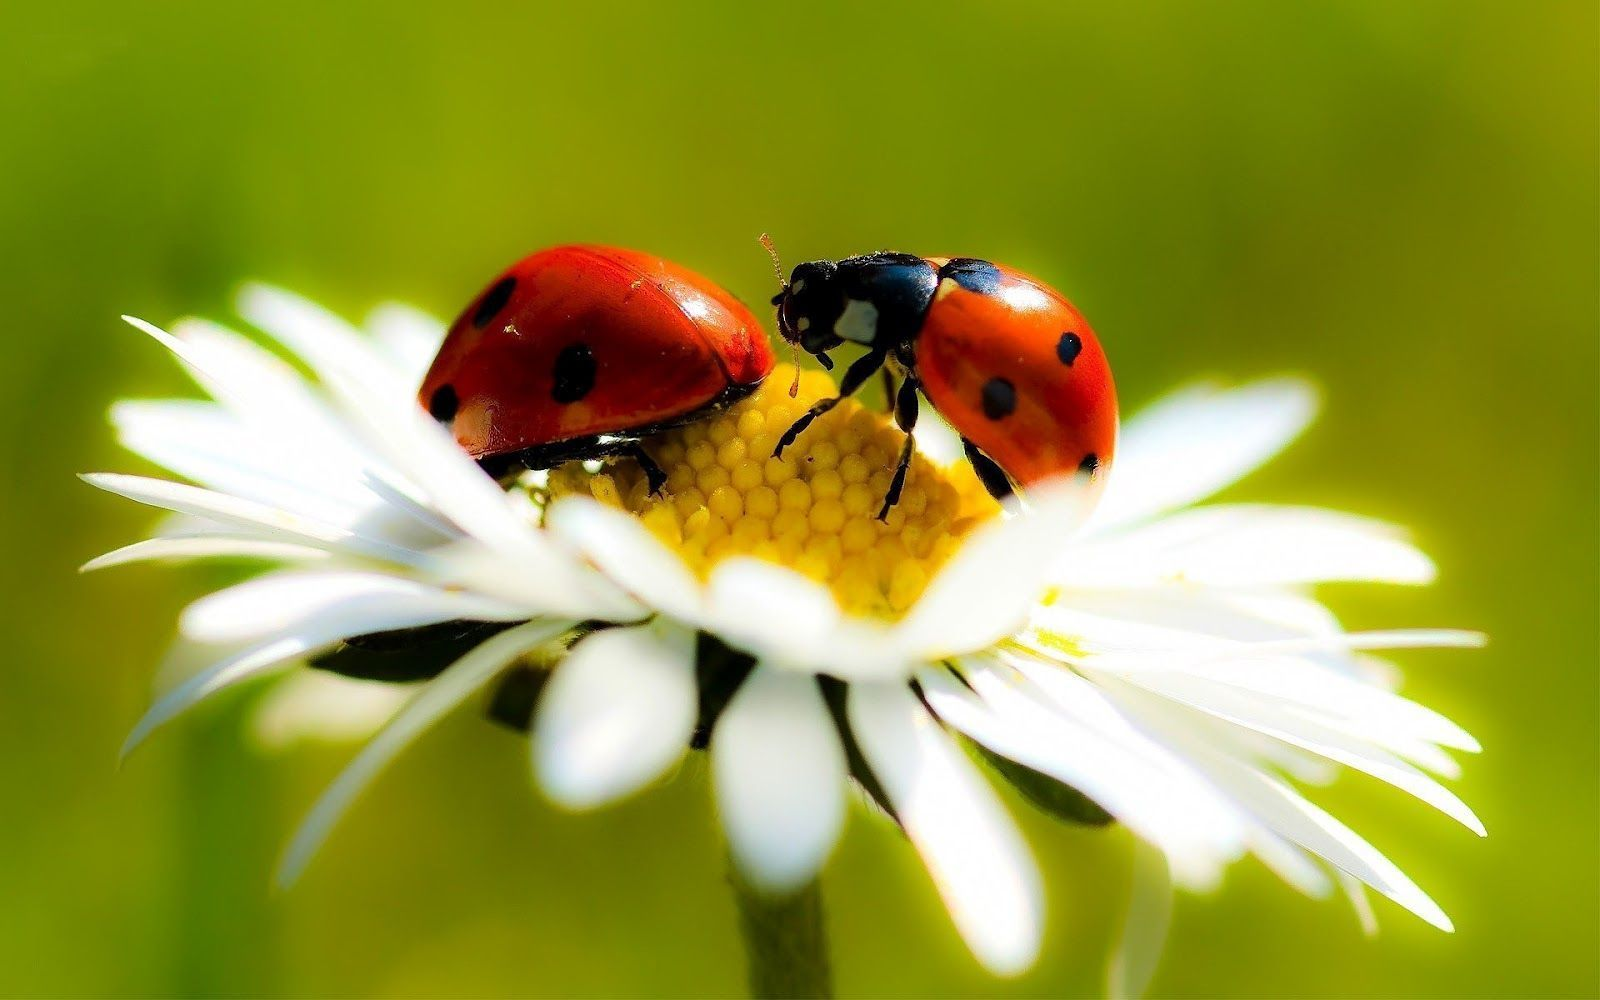 60 Ladybug and Flower Wallpapers   Download at WallpaperBro 1600x1000